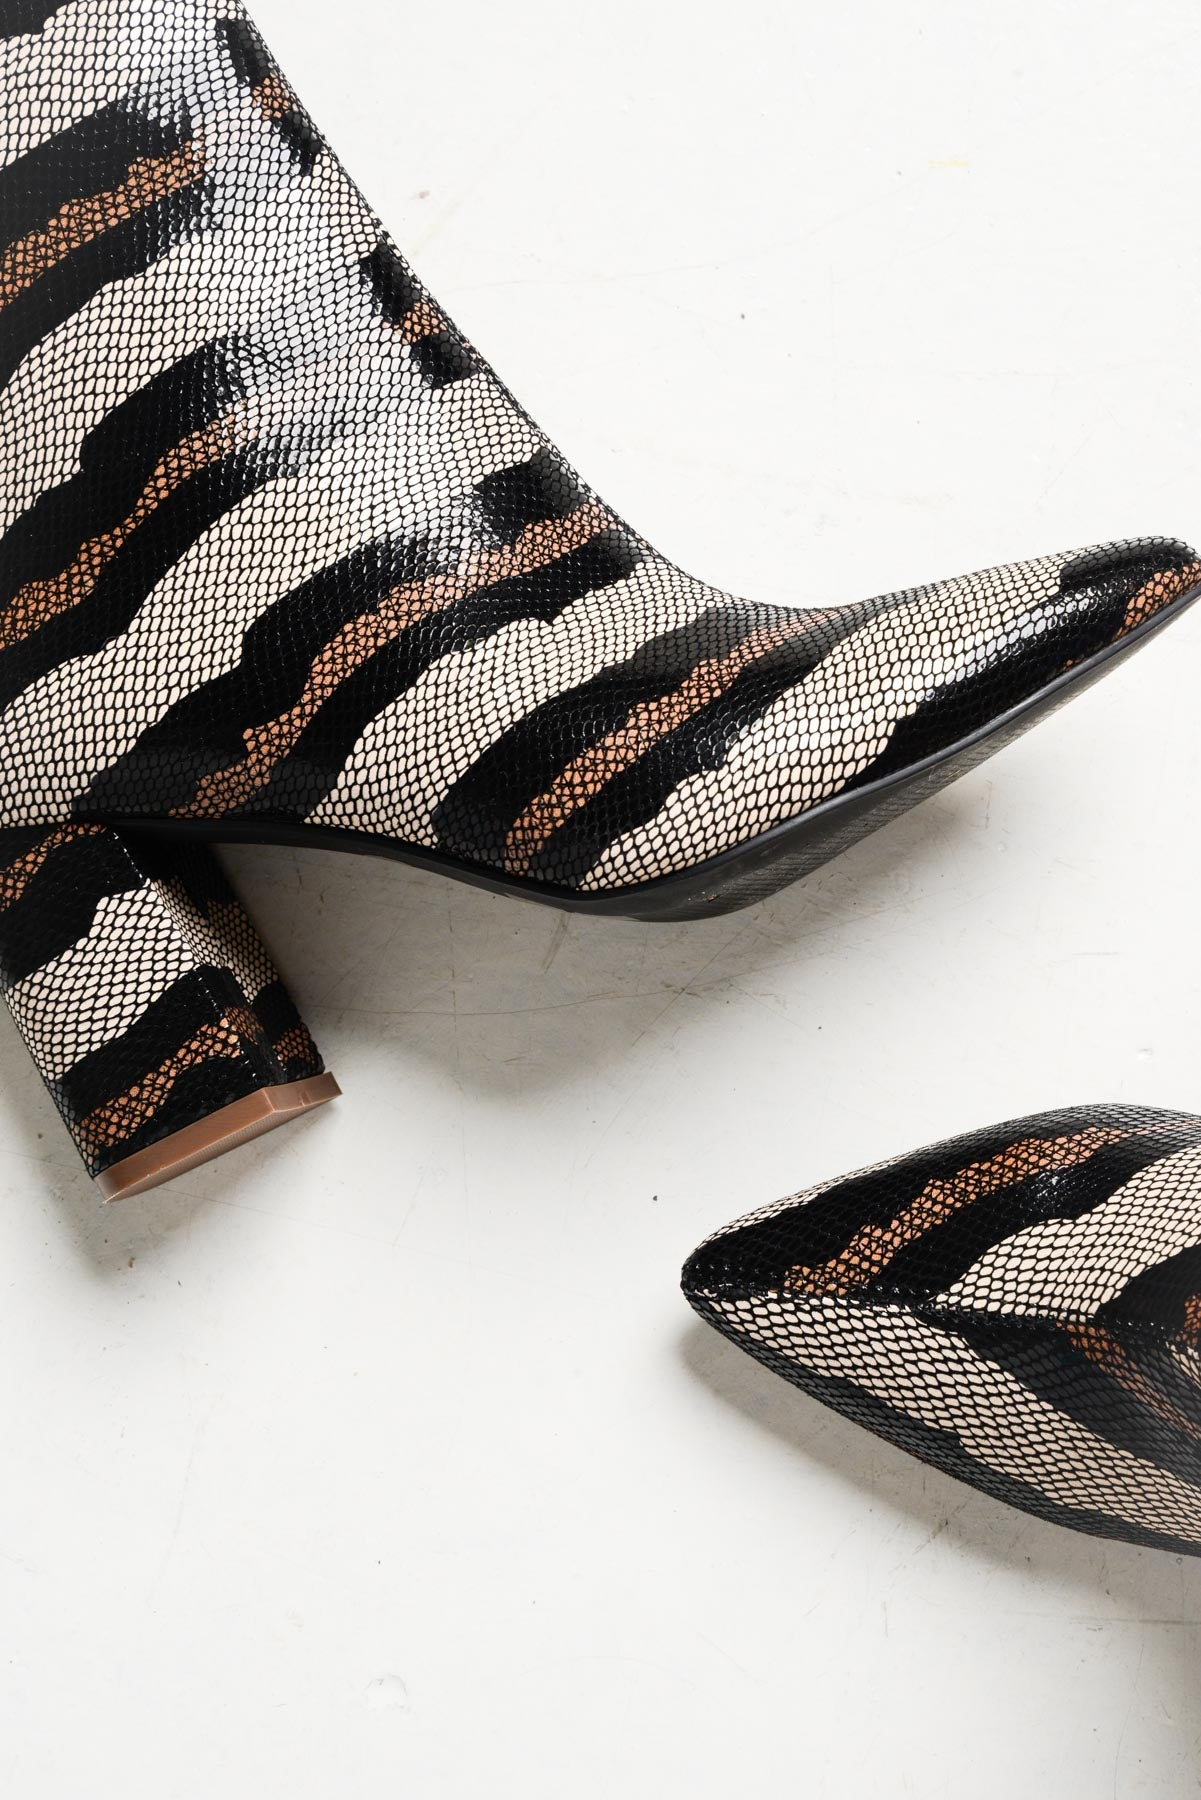 Kingston Python Stripe Leather Boots - Hael and Jax - Blue Bungalow Online